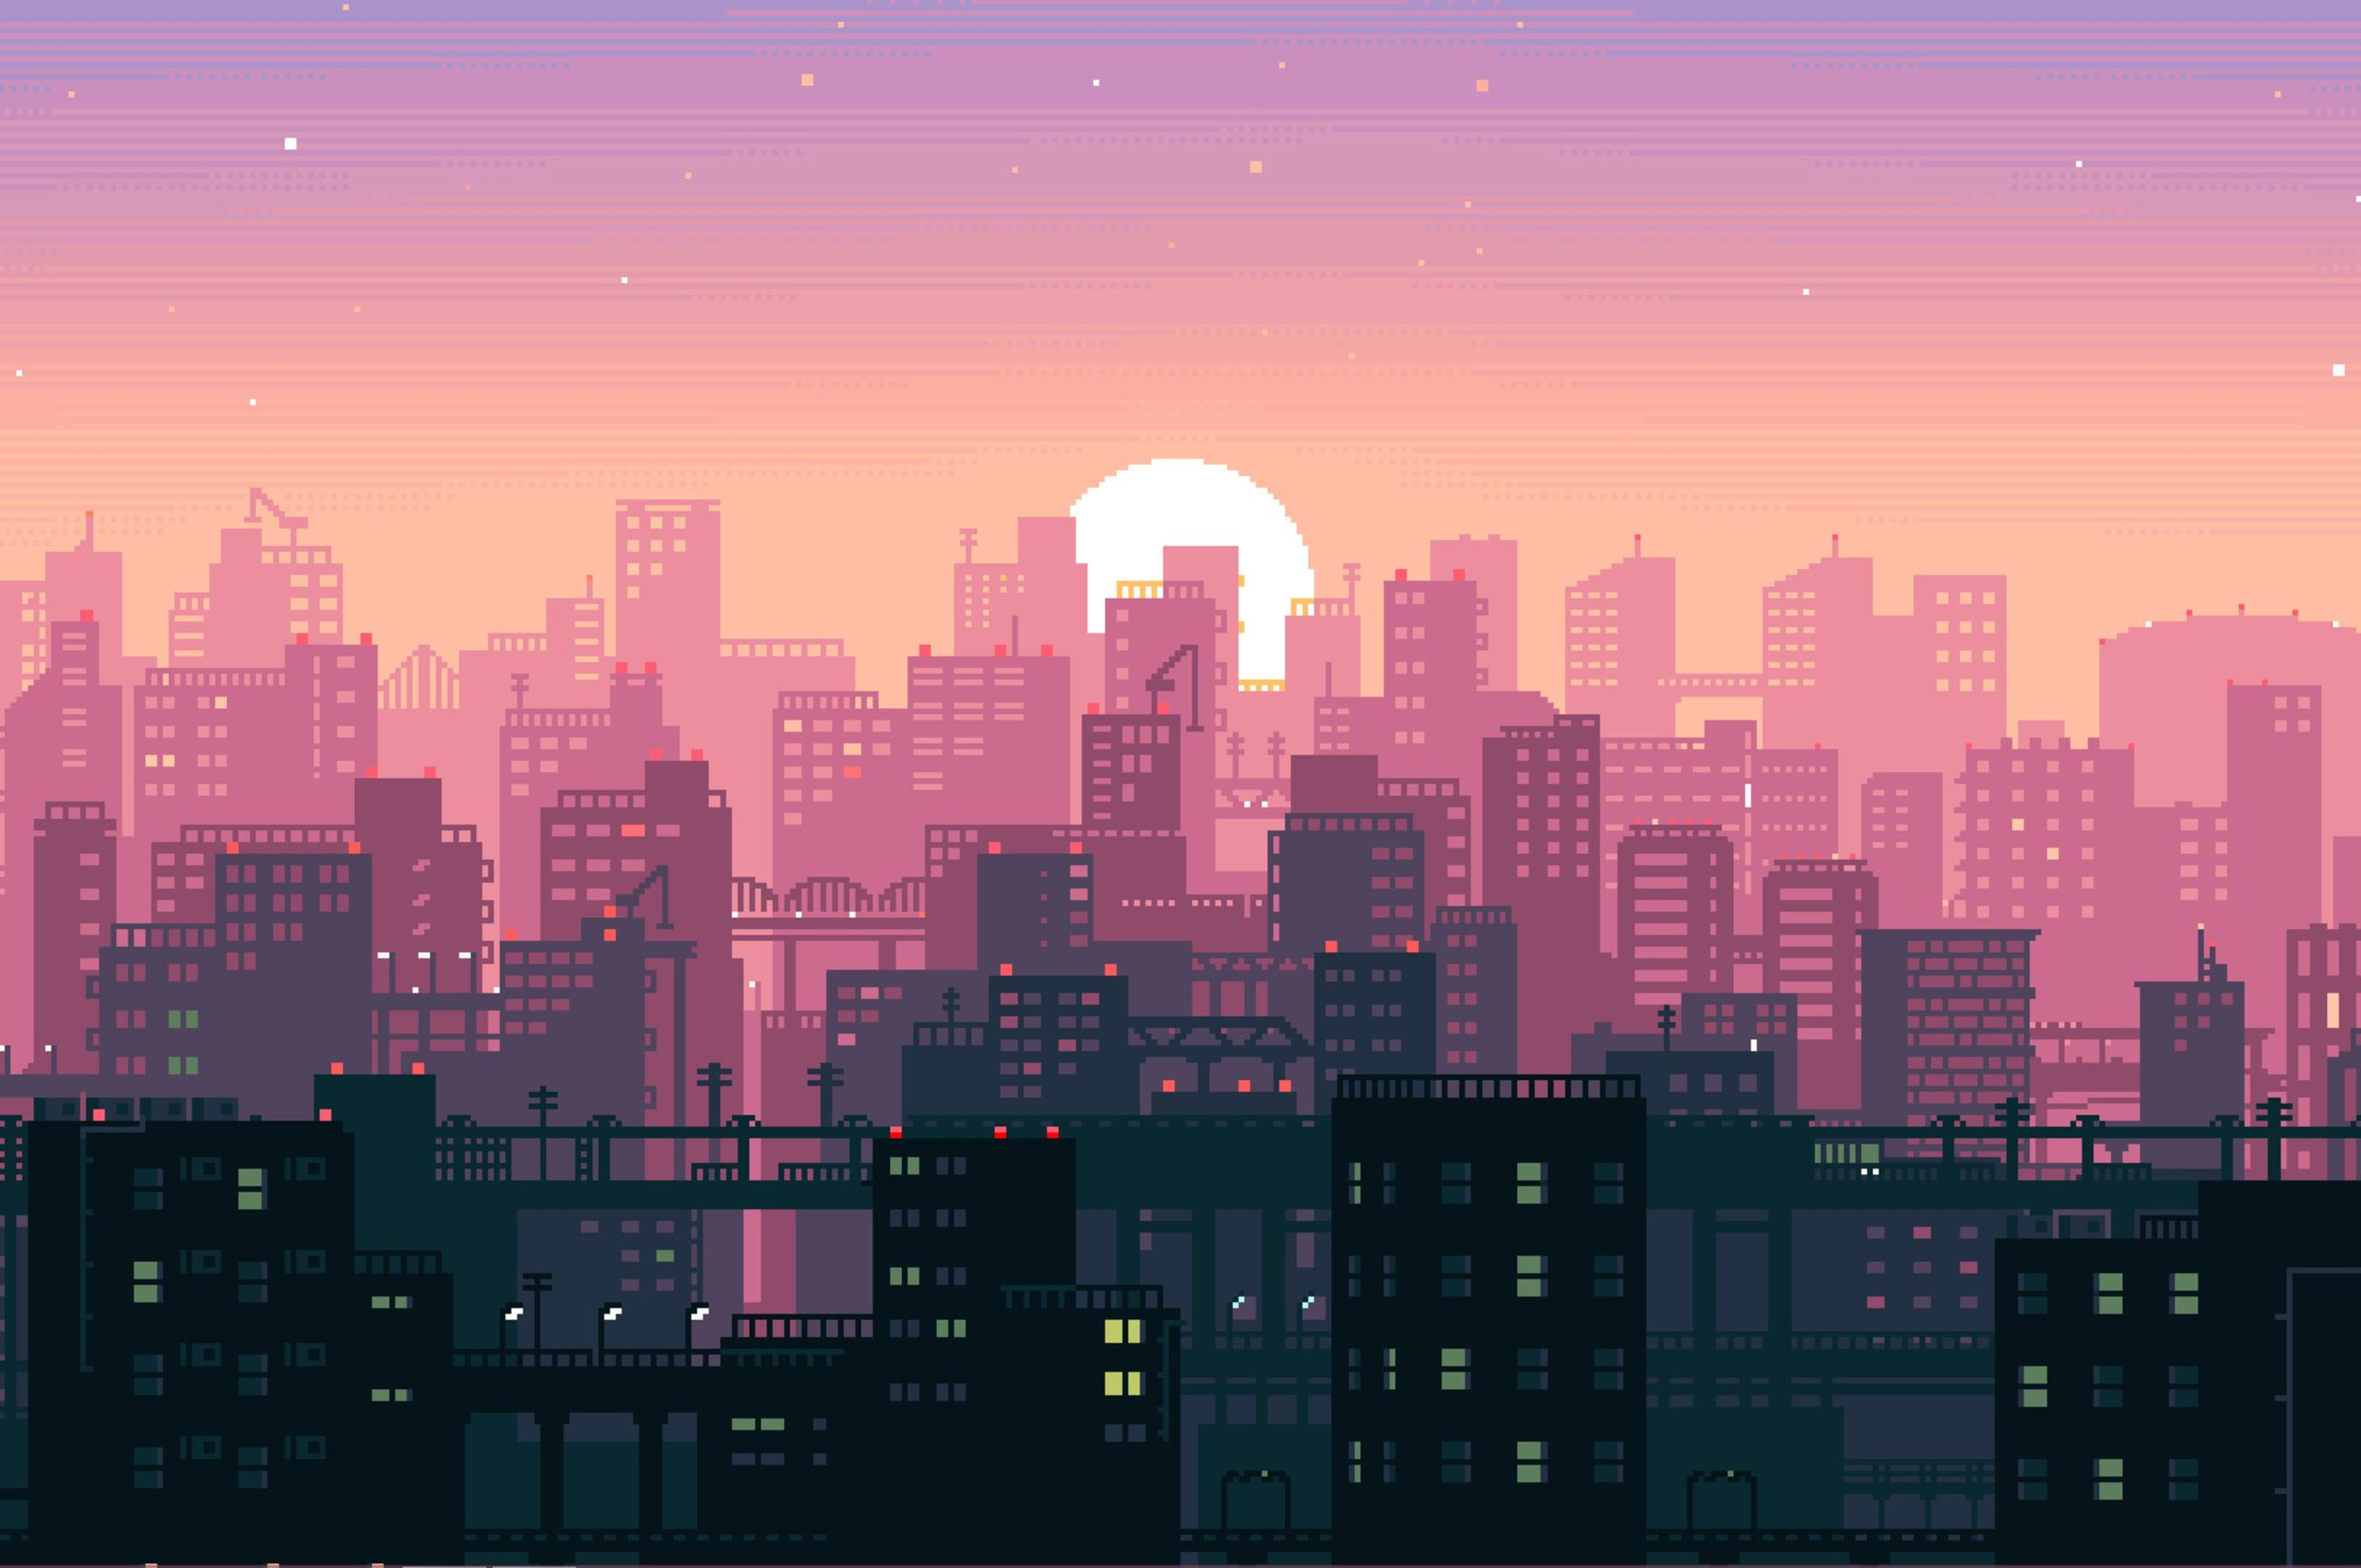 8Bit Sunset [2560x1700] Pixel art background, Aesthetic